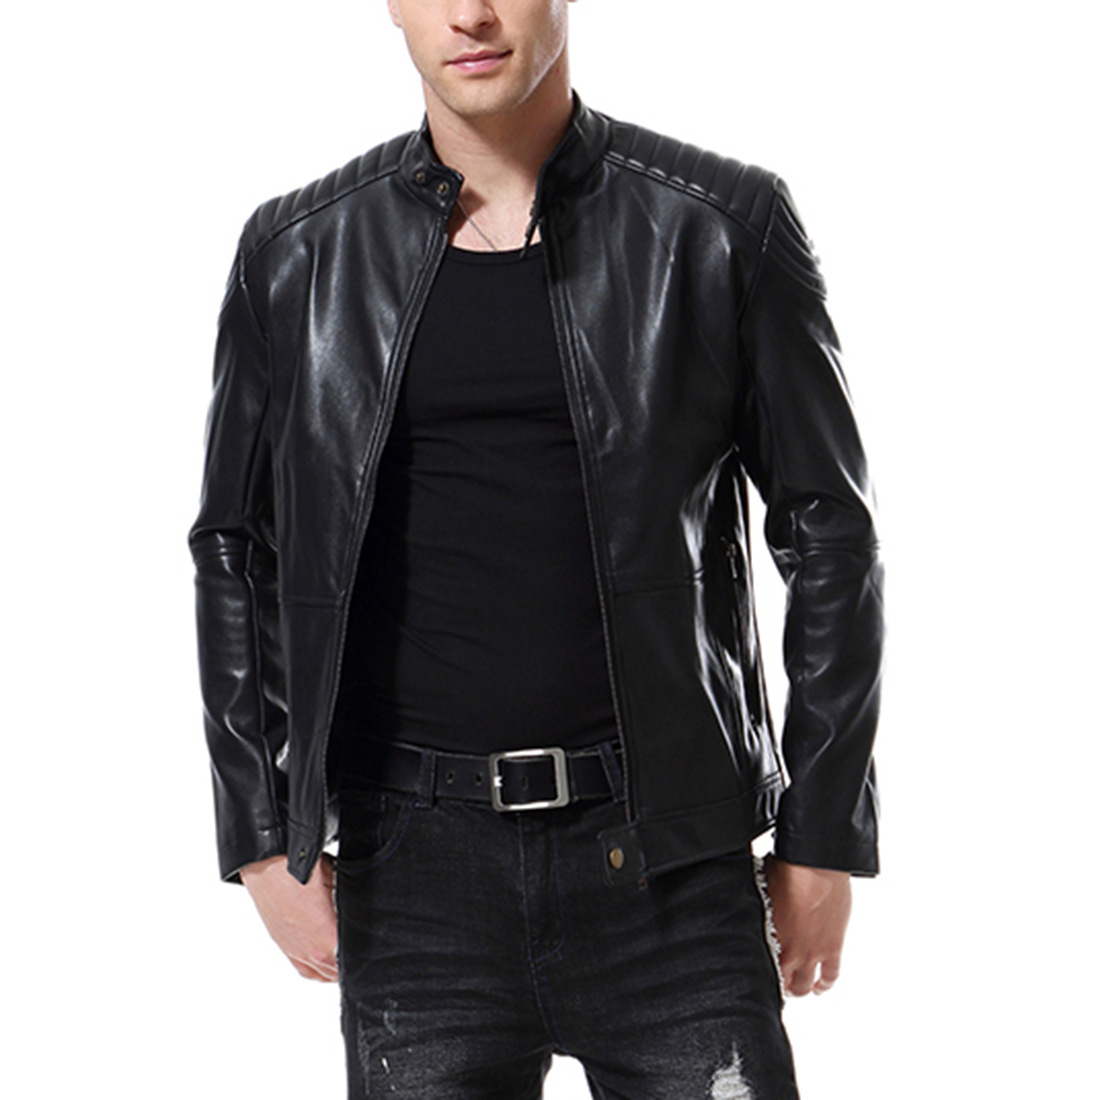 Punk Style New Large Size Leather Jacket Washed Leather Motorcycle Jacket PU Stand Collar Jacket